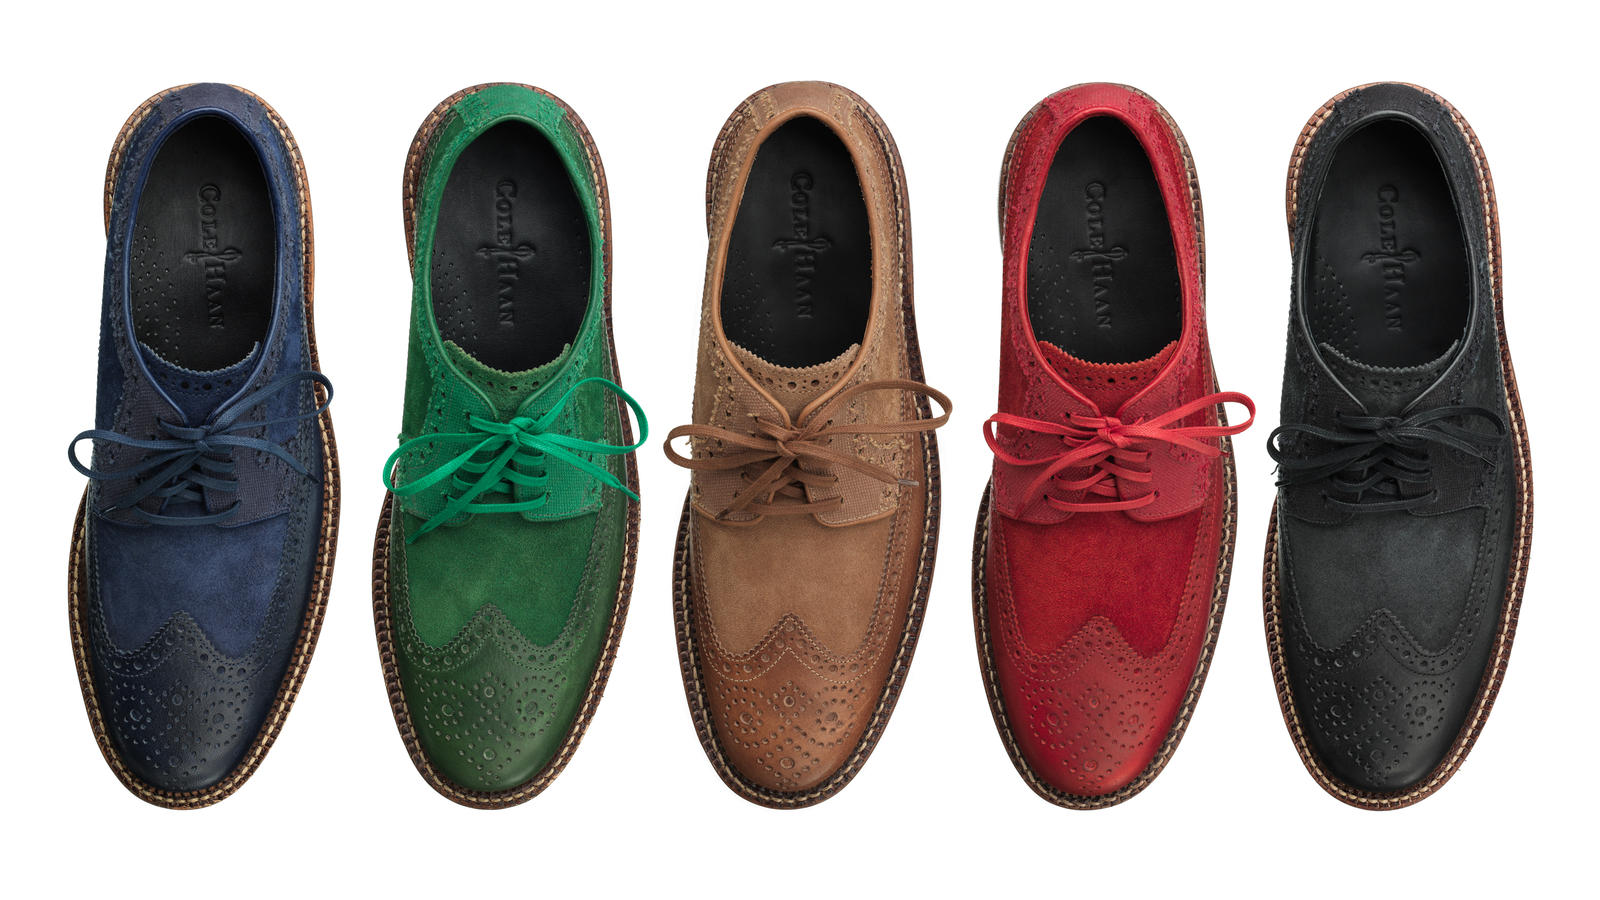 cole haan shoes wikipedia indonesia manchester 718134